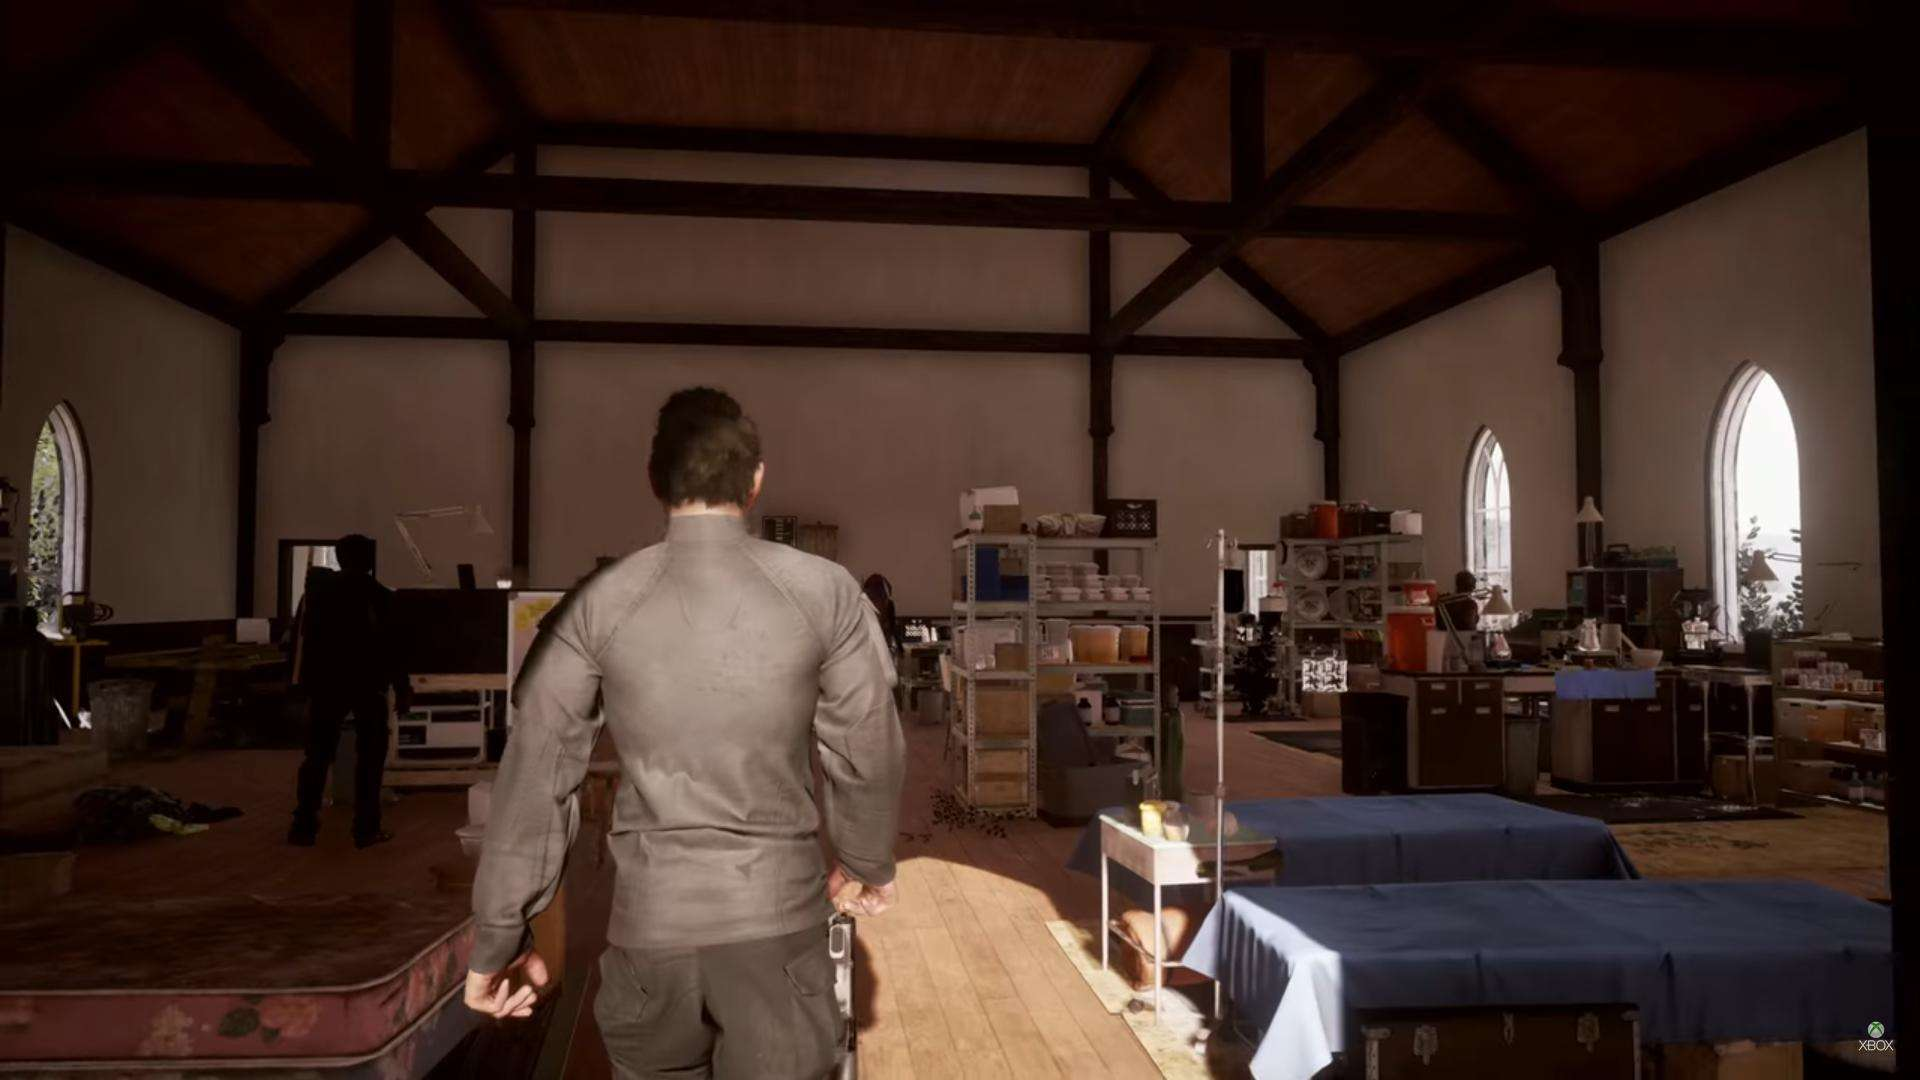 State of Decay 2 E3 2017 Base indoor